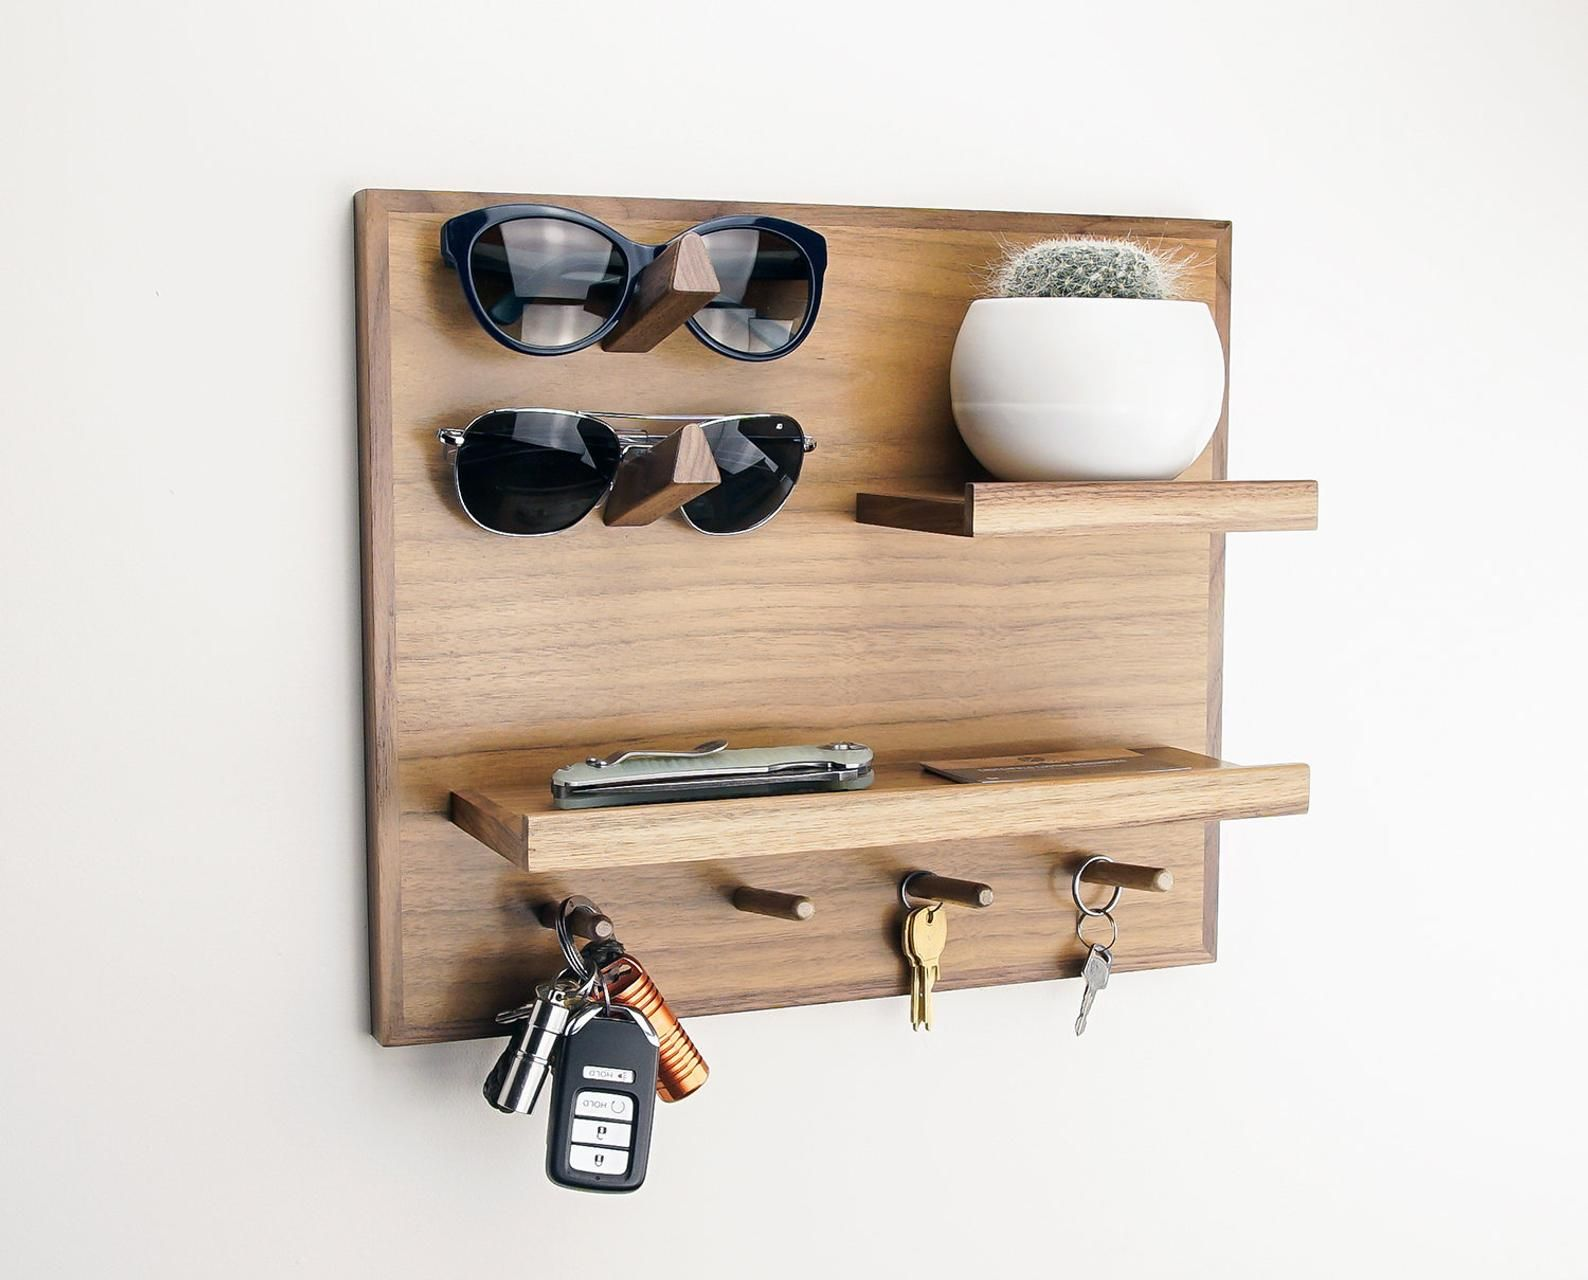 Walnut Entryway Organizer Wall Storage For Wallet Phone Image 0 Small Entryway Organization Entryway Organizer Wall Wall Storage